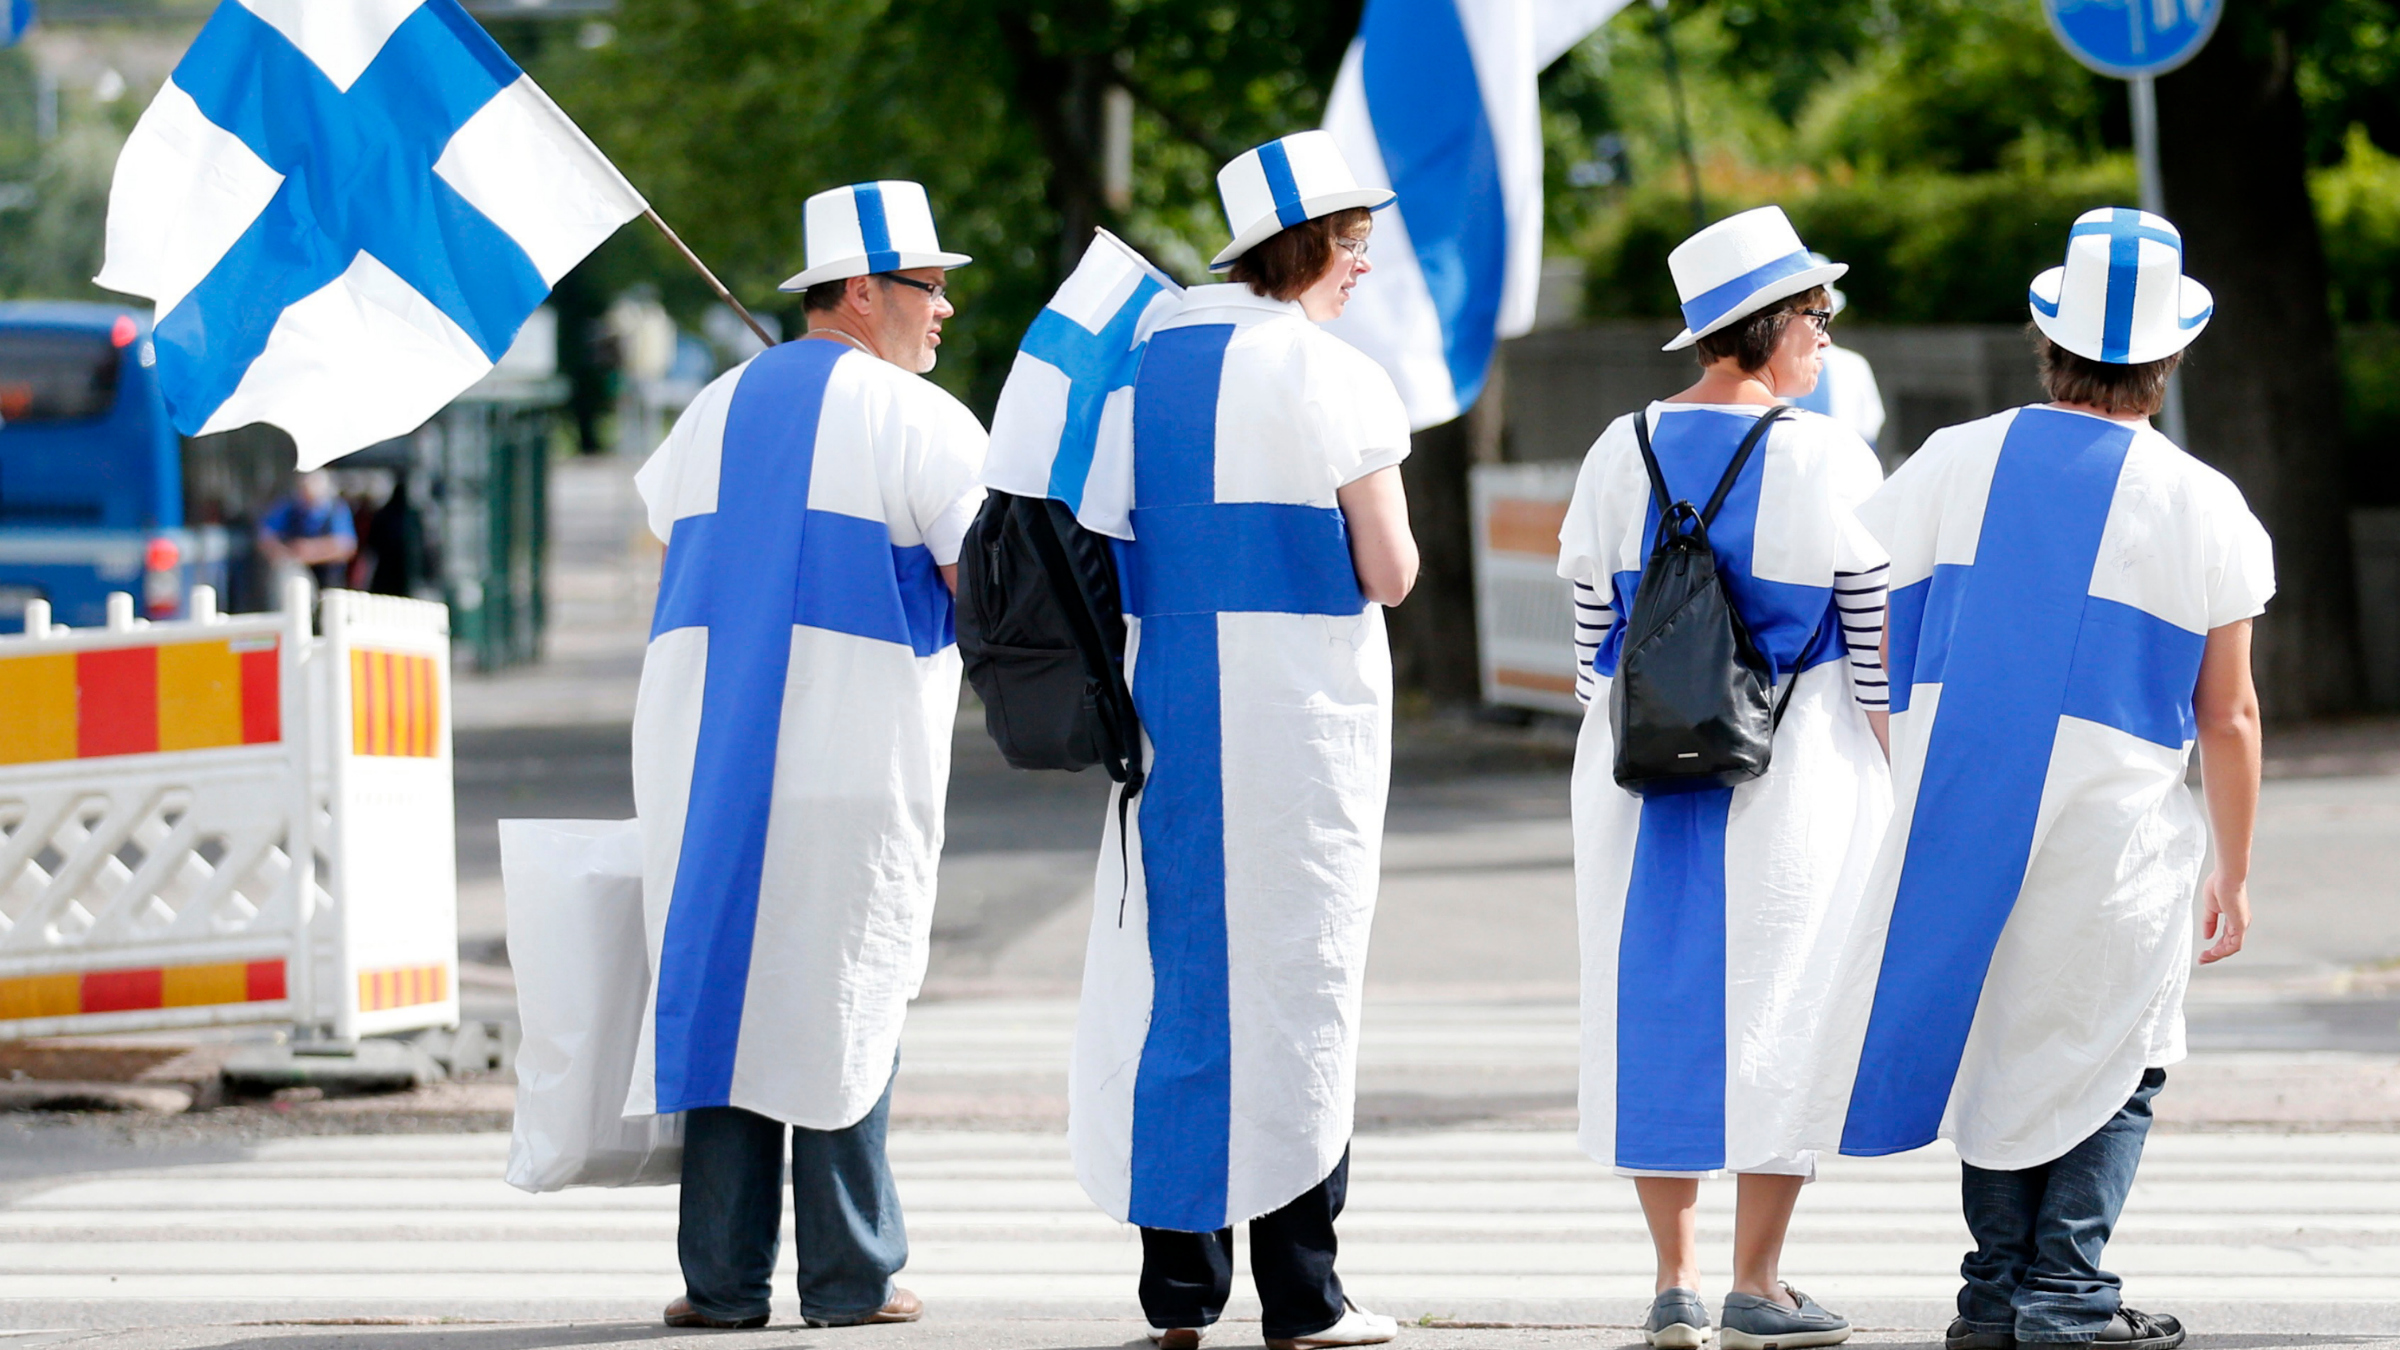 Finnish fans dress in their national colours and hold Finnish flags at the European Athletics Championships in Helsinki.